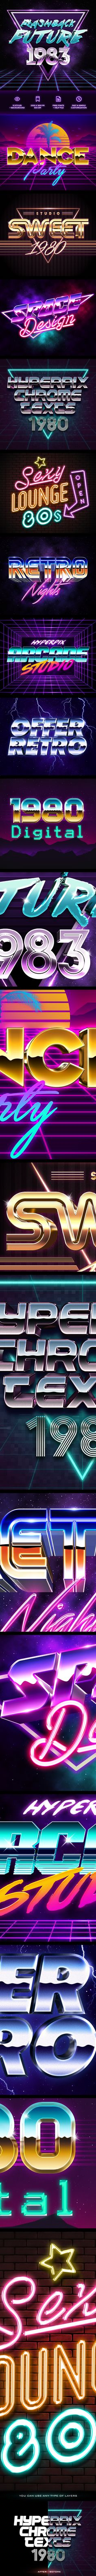 #80's Style Text Generator - #Text #Effects #Actions #PSAction #Photoshop #PS #Graphicriver #Design #TextEffects #old